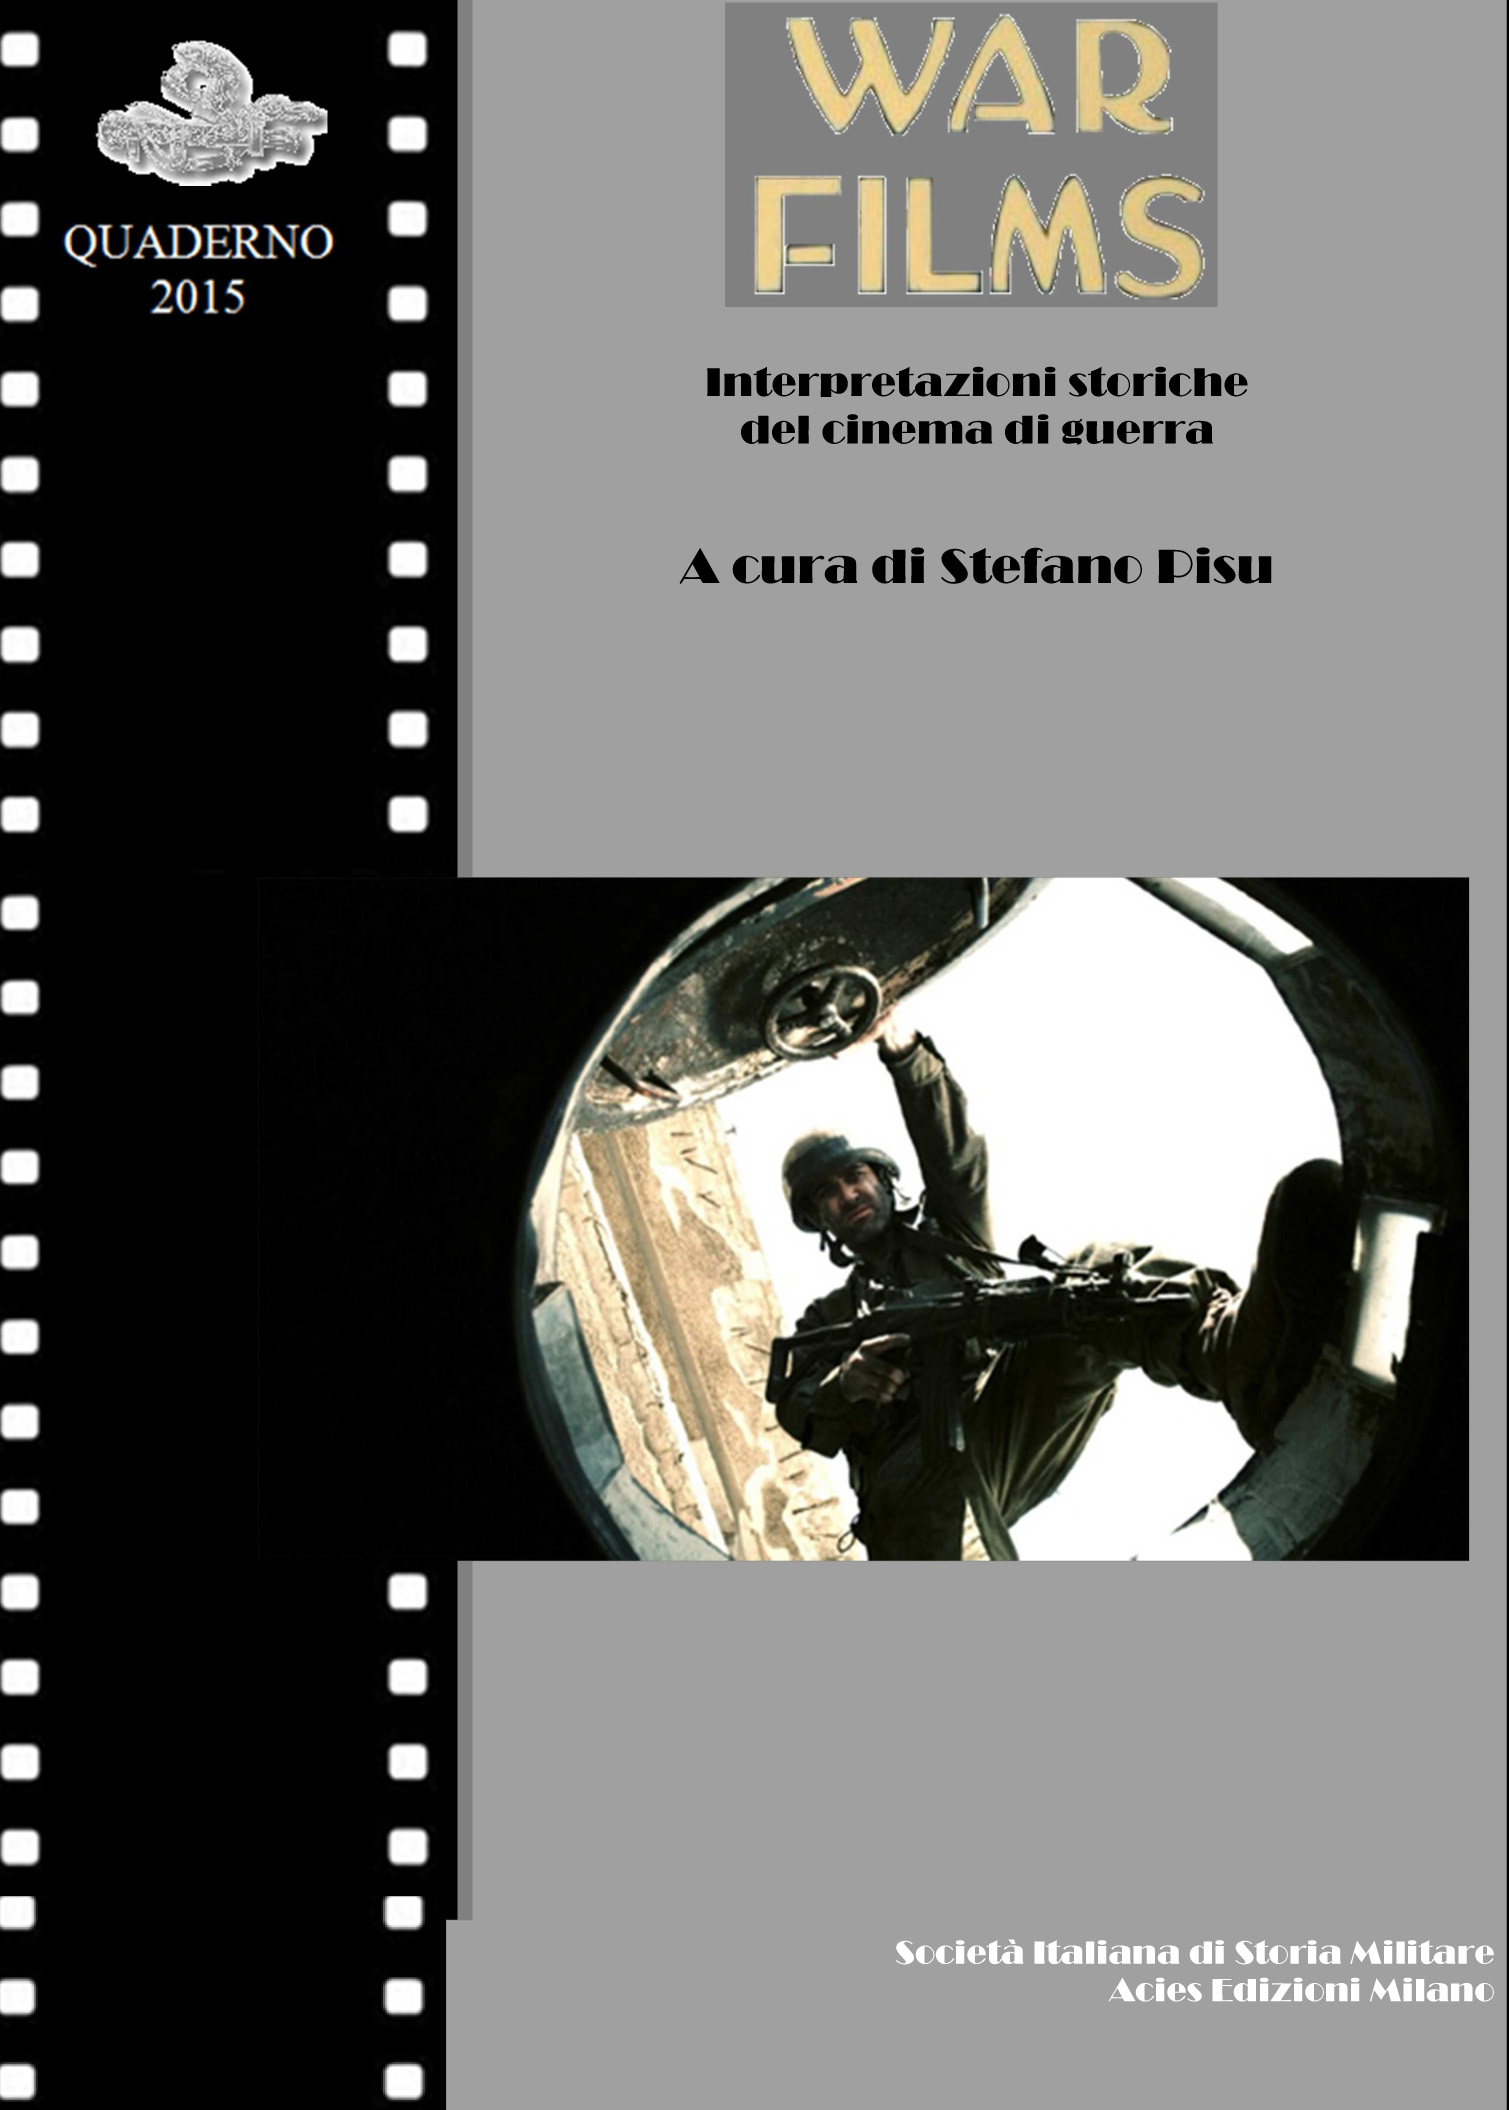 Copertina Quaderno Sism 2015 War Movies. I e IV